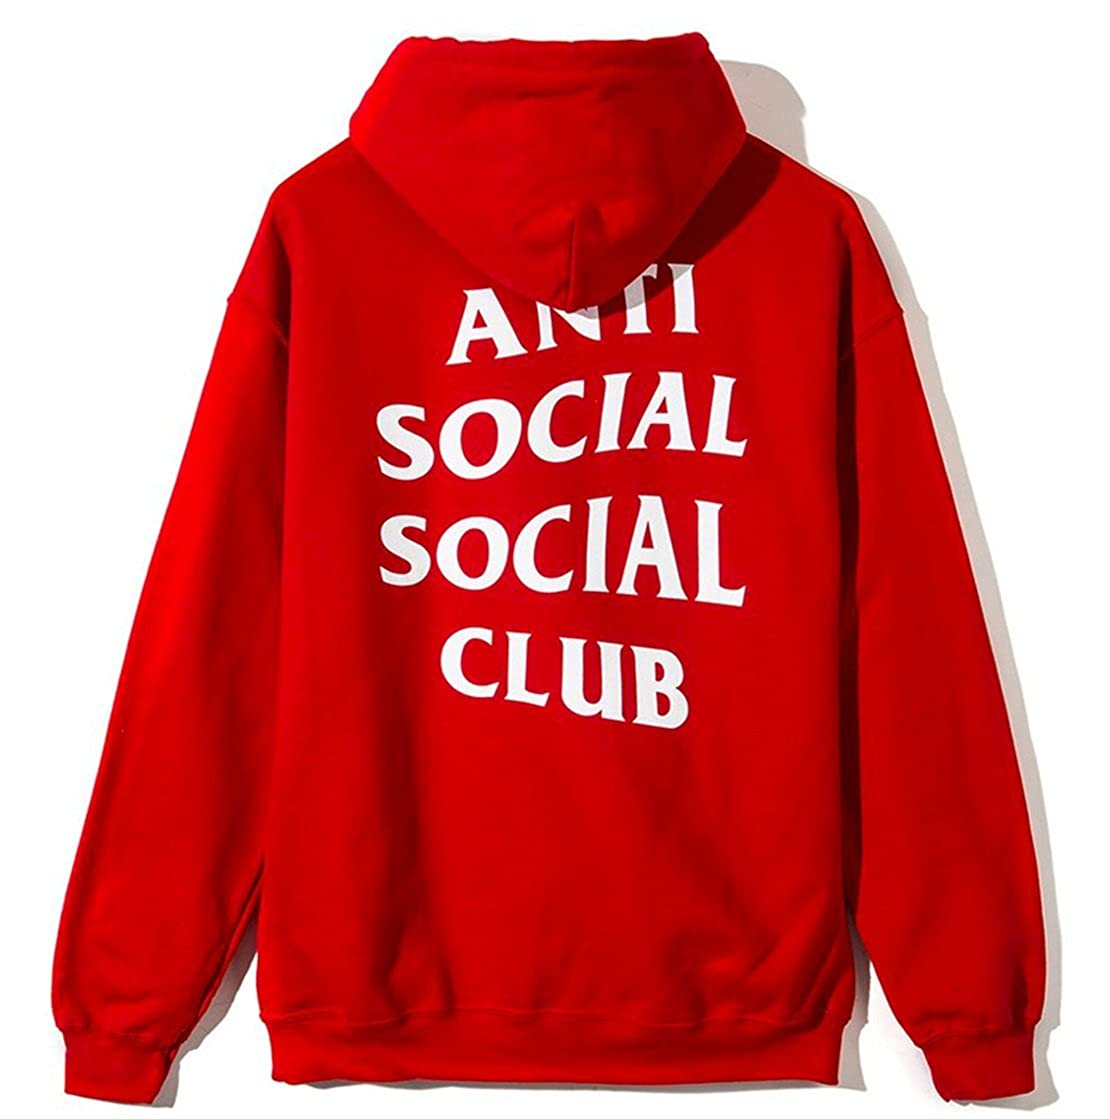 8a75139f149fd Anti social social club hoodie RED as worn by Kanye West yeezy